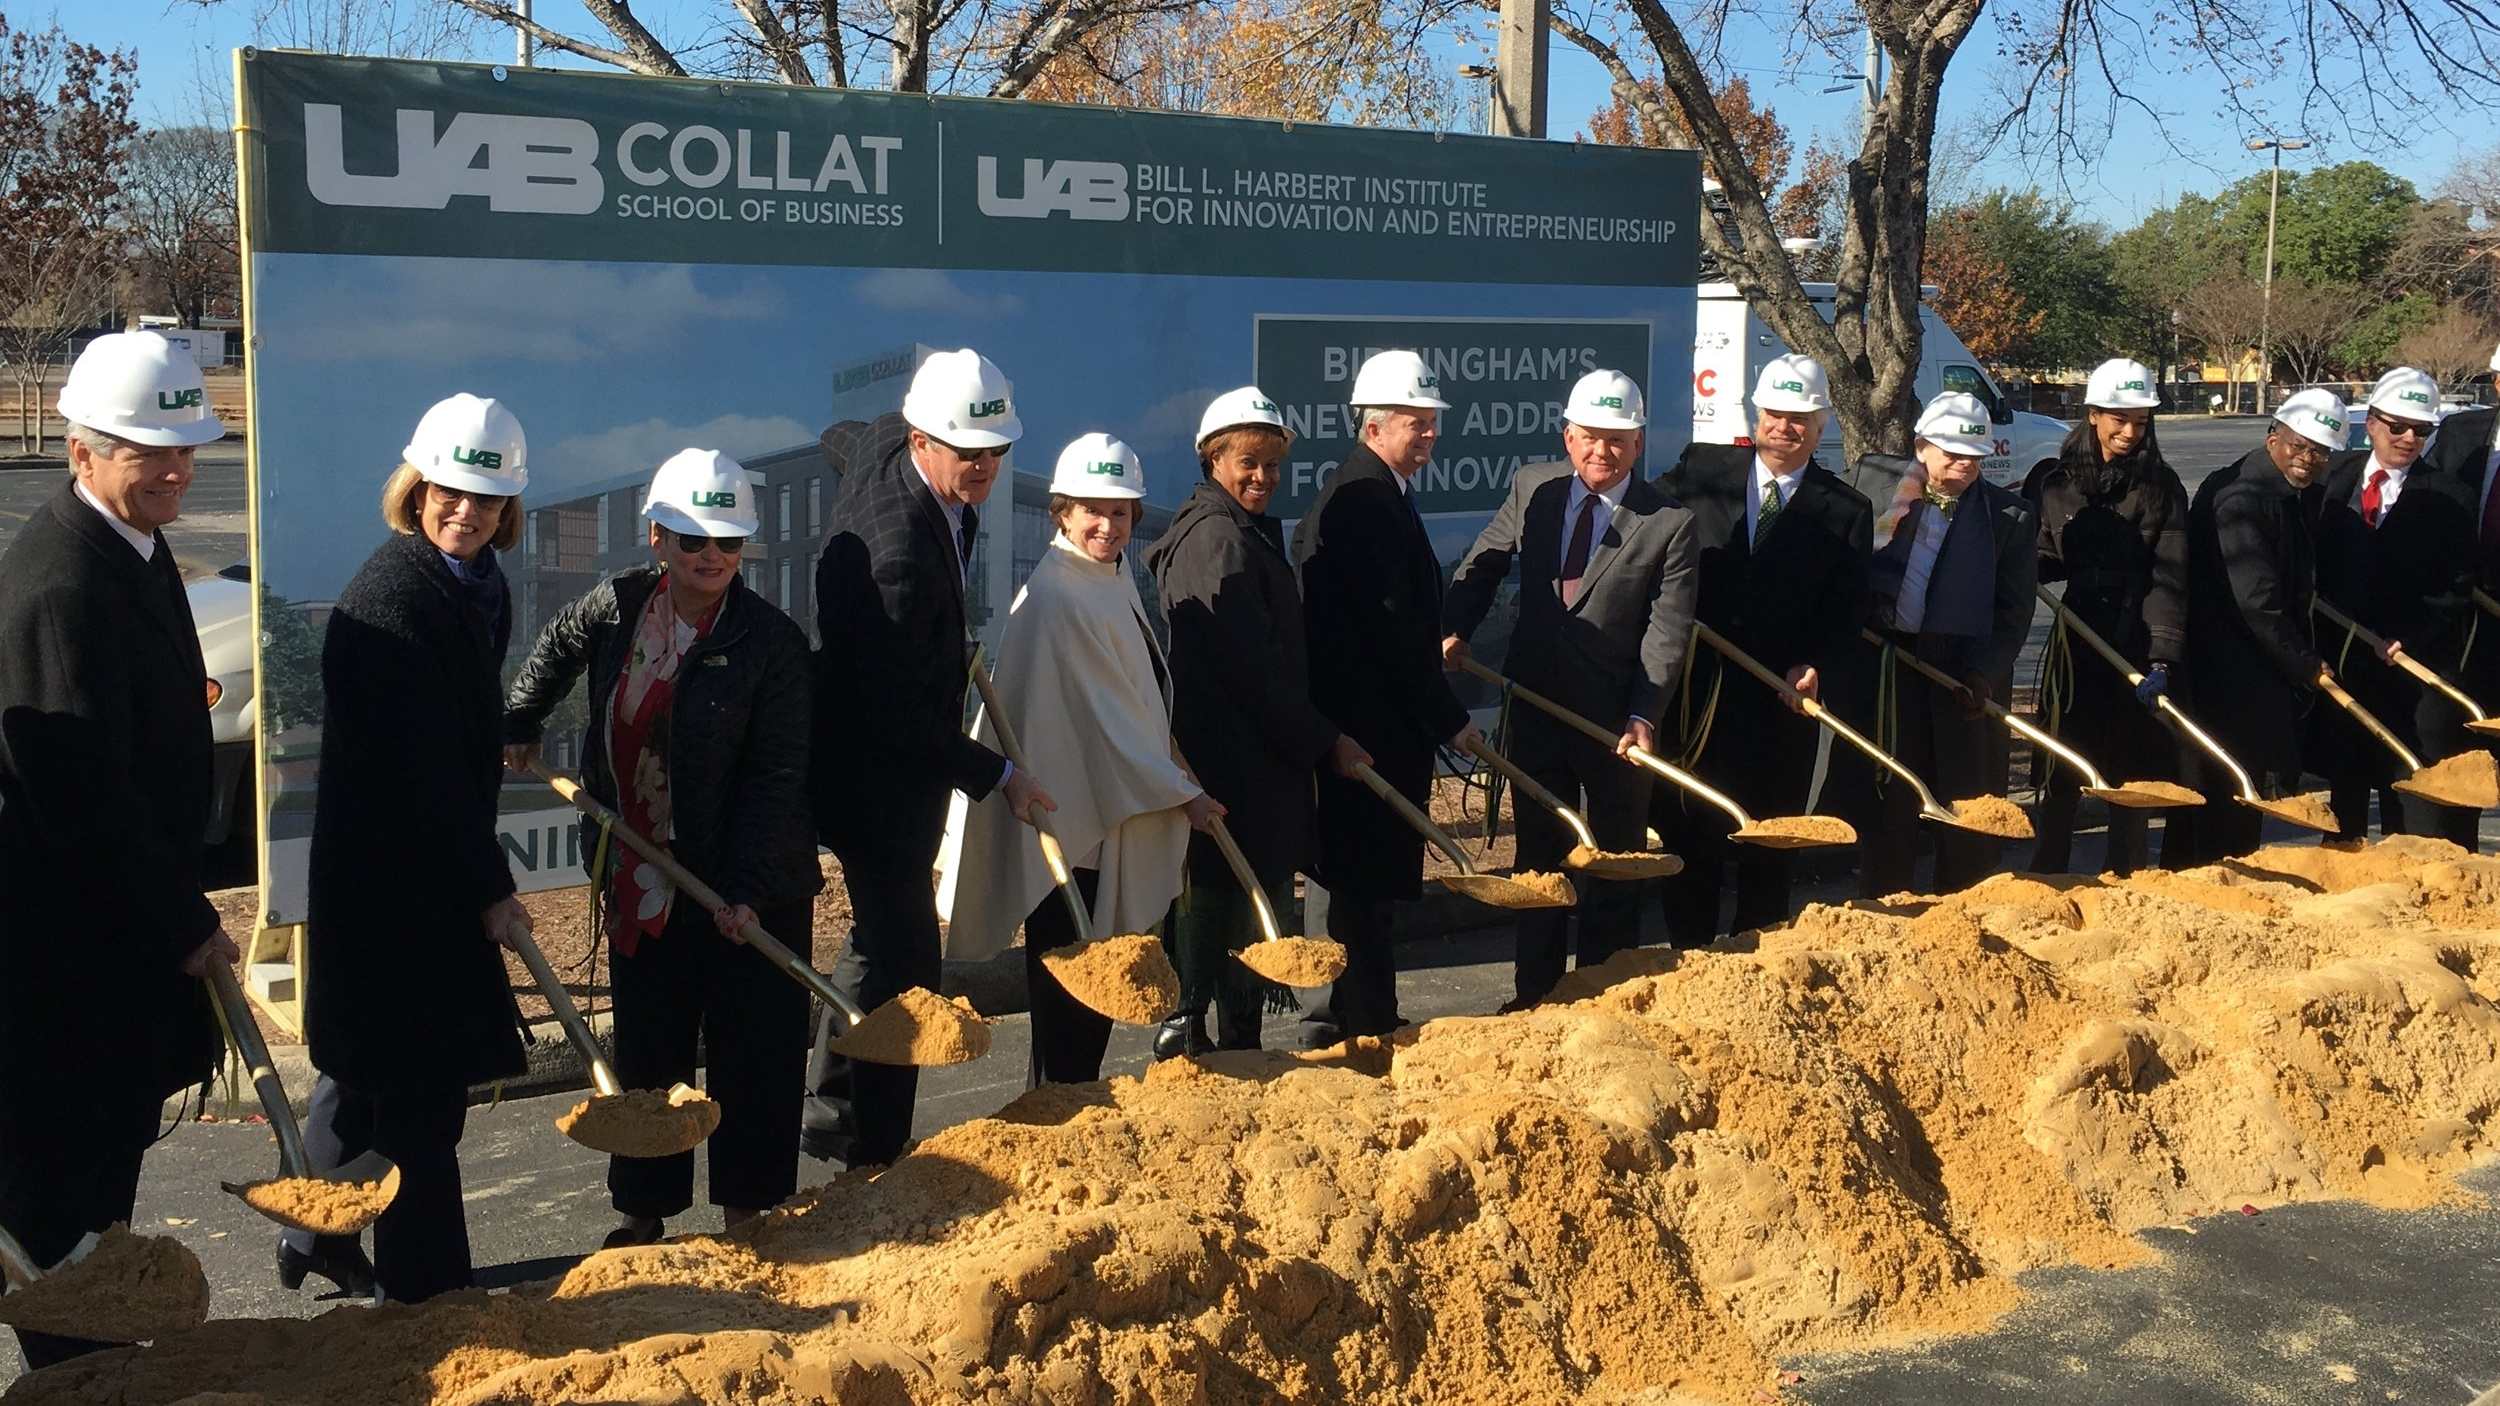 UAB Collat School of Business Ground Breaking